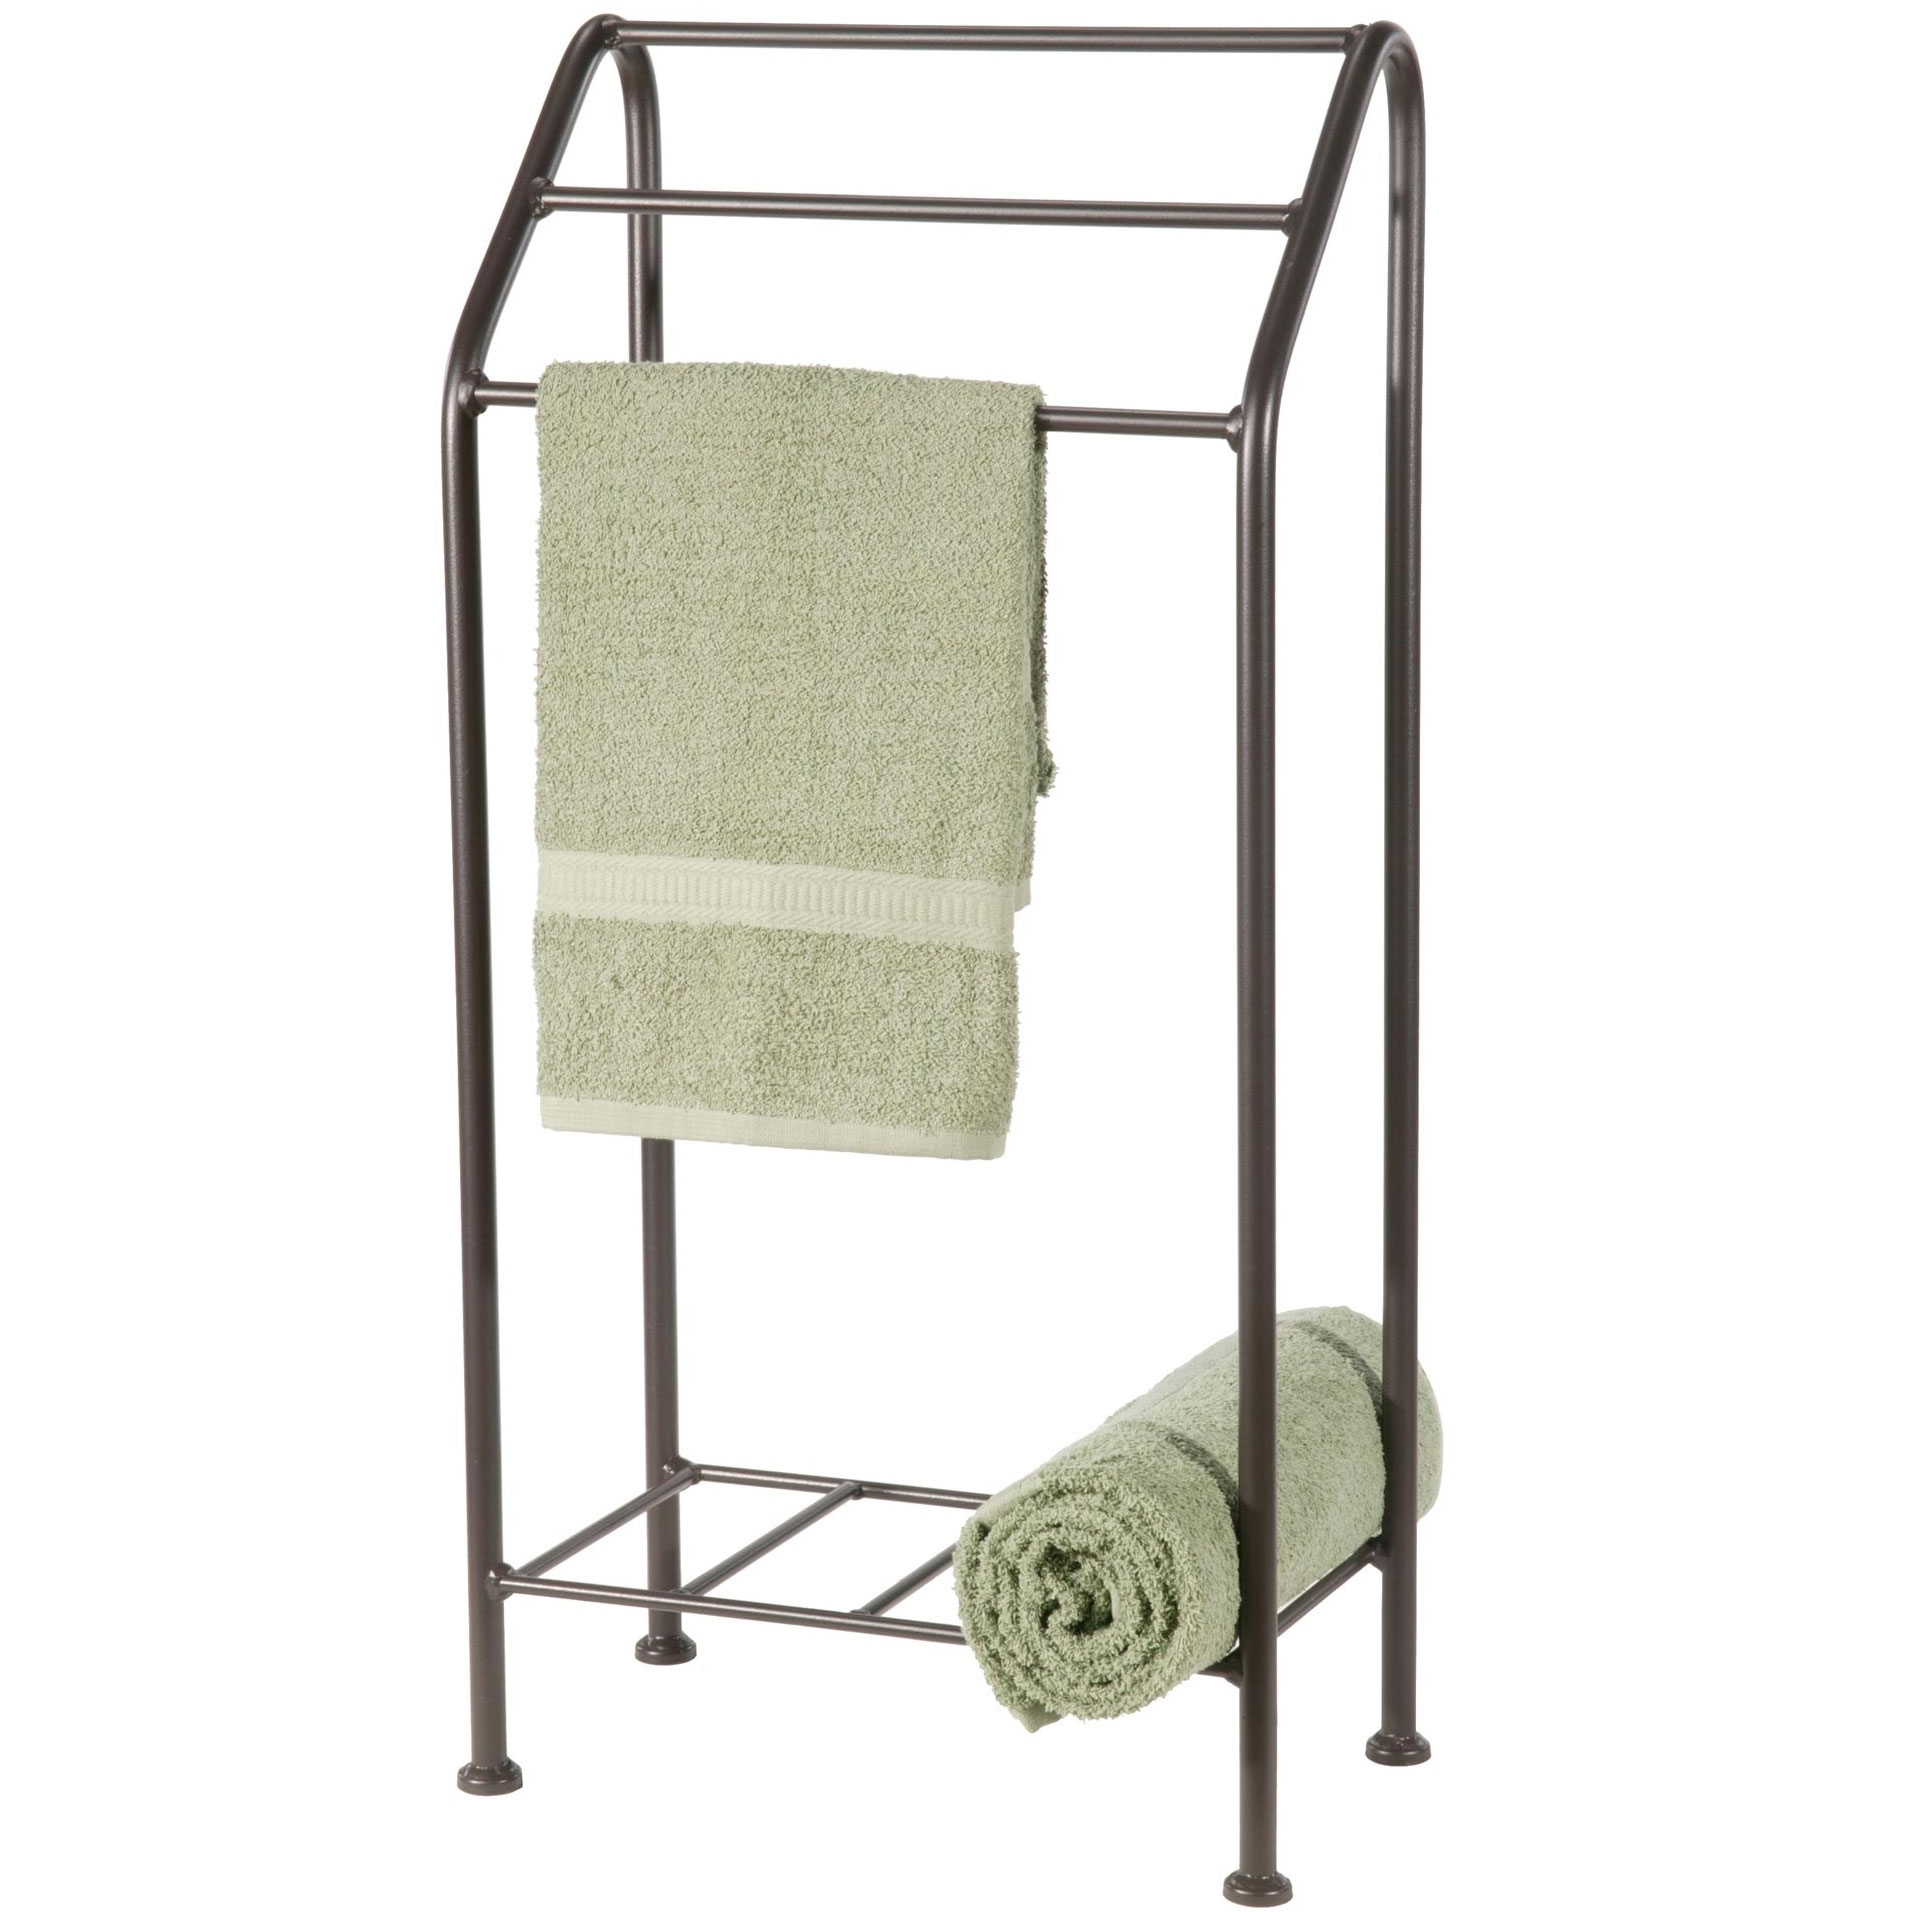 Wrought Iron Towel Rack Free Standing Monticello Towel Rack